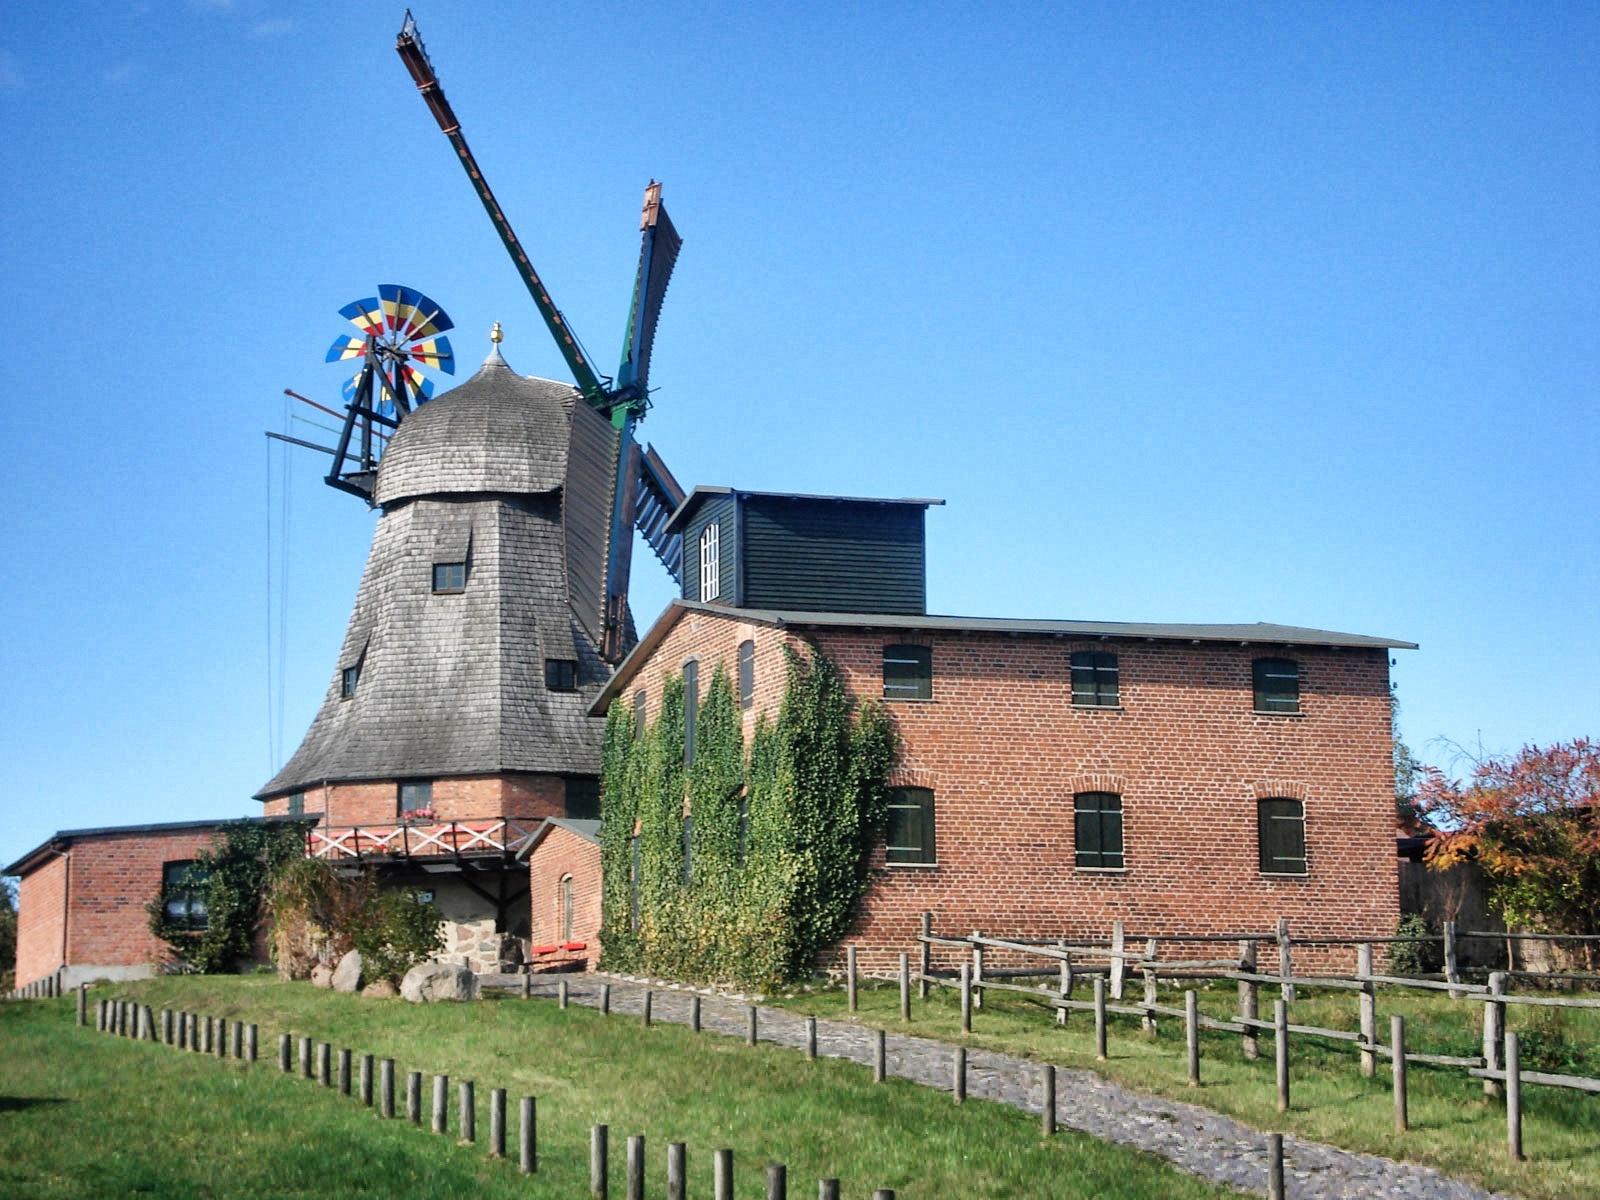 Stadtwindmühle